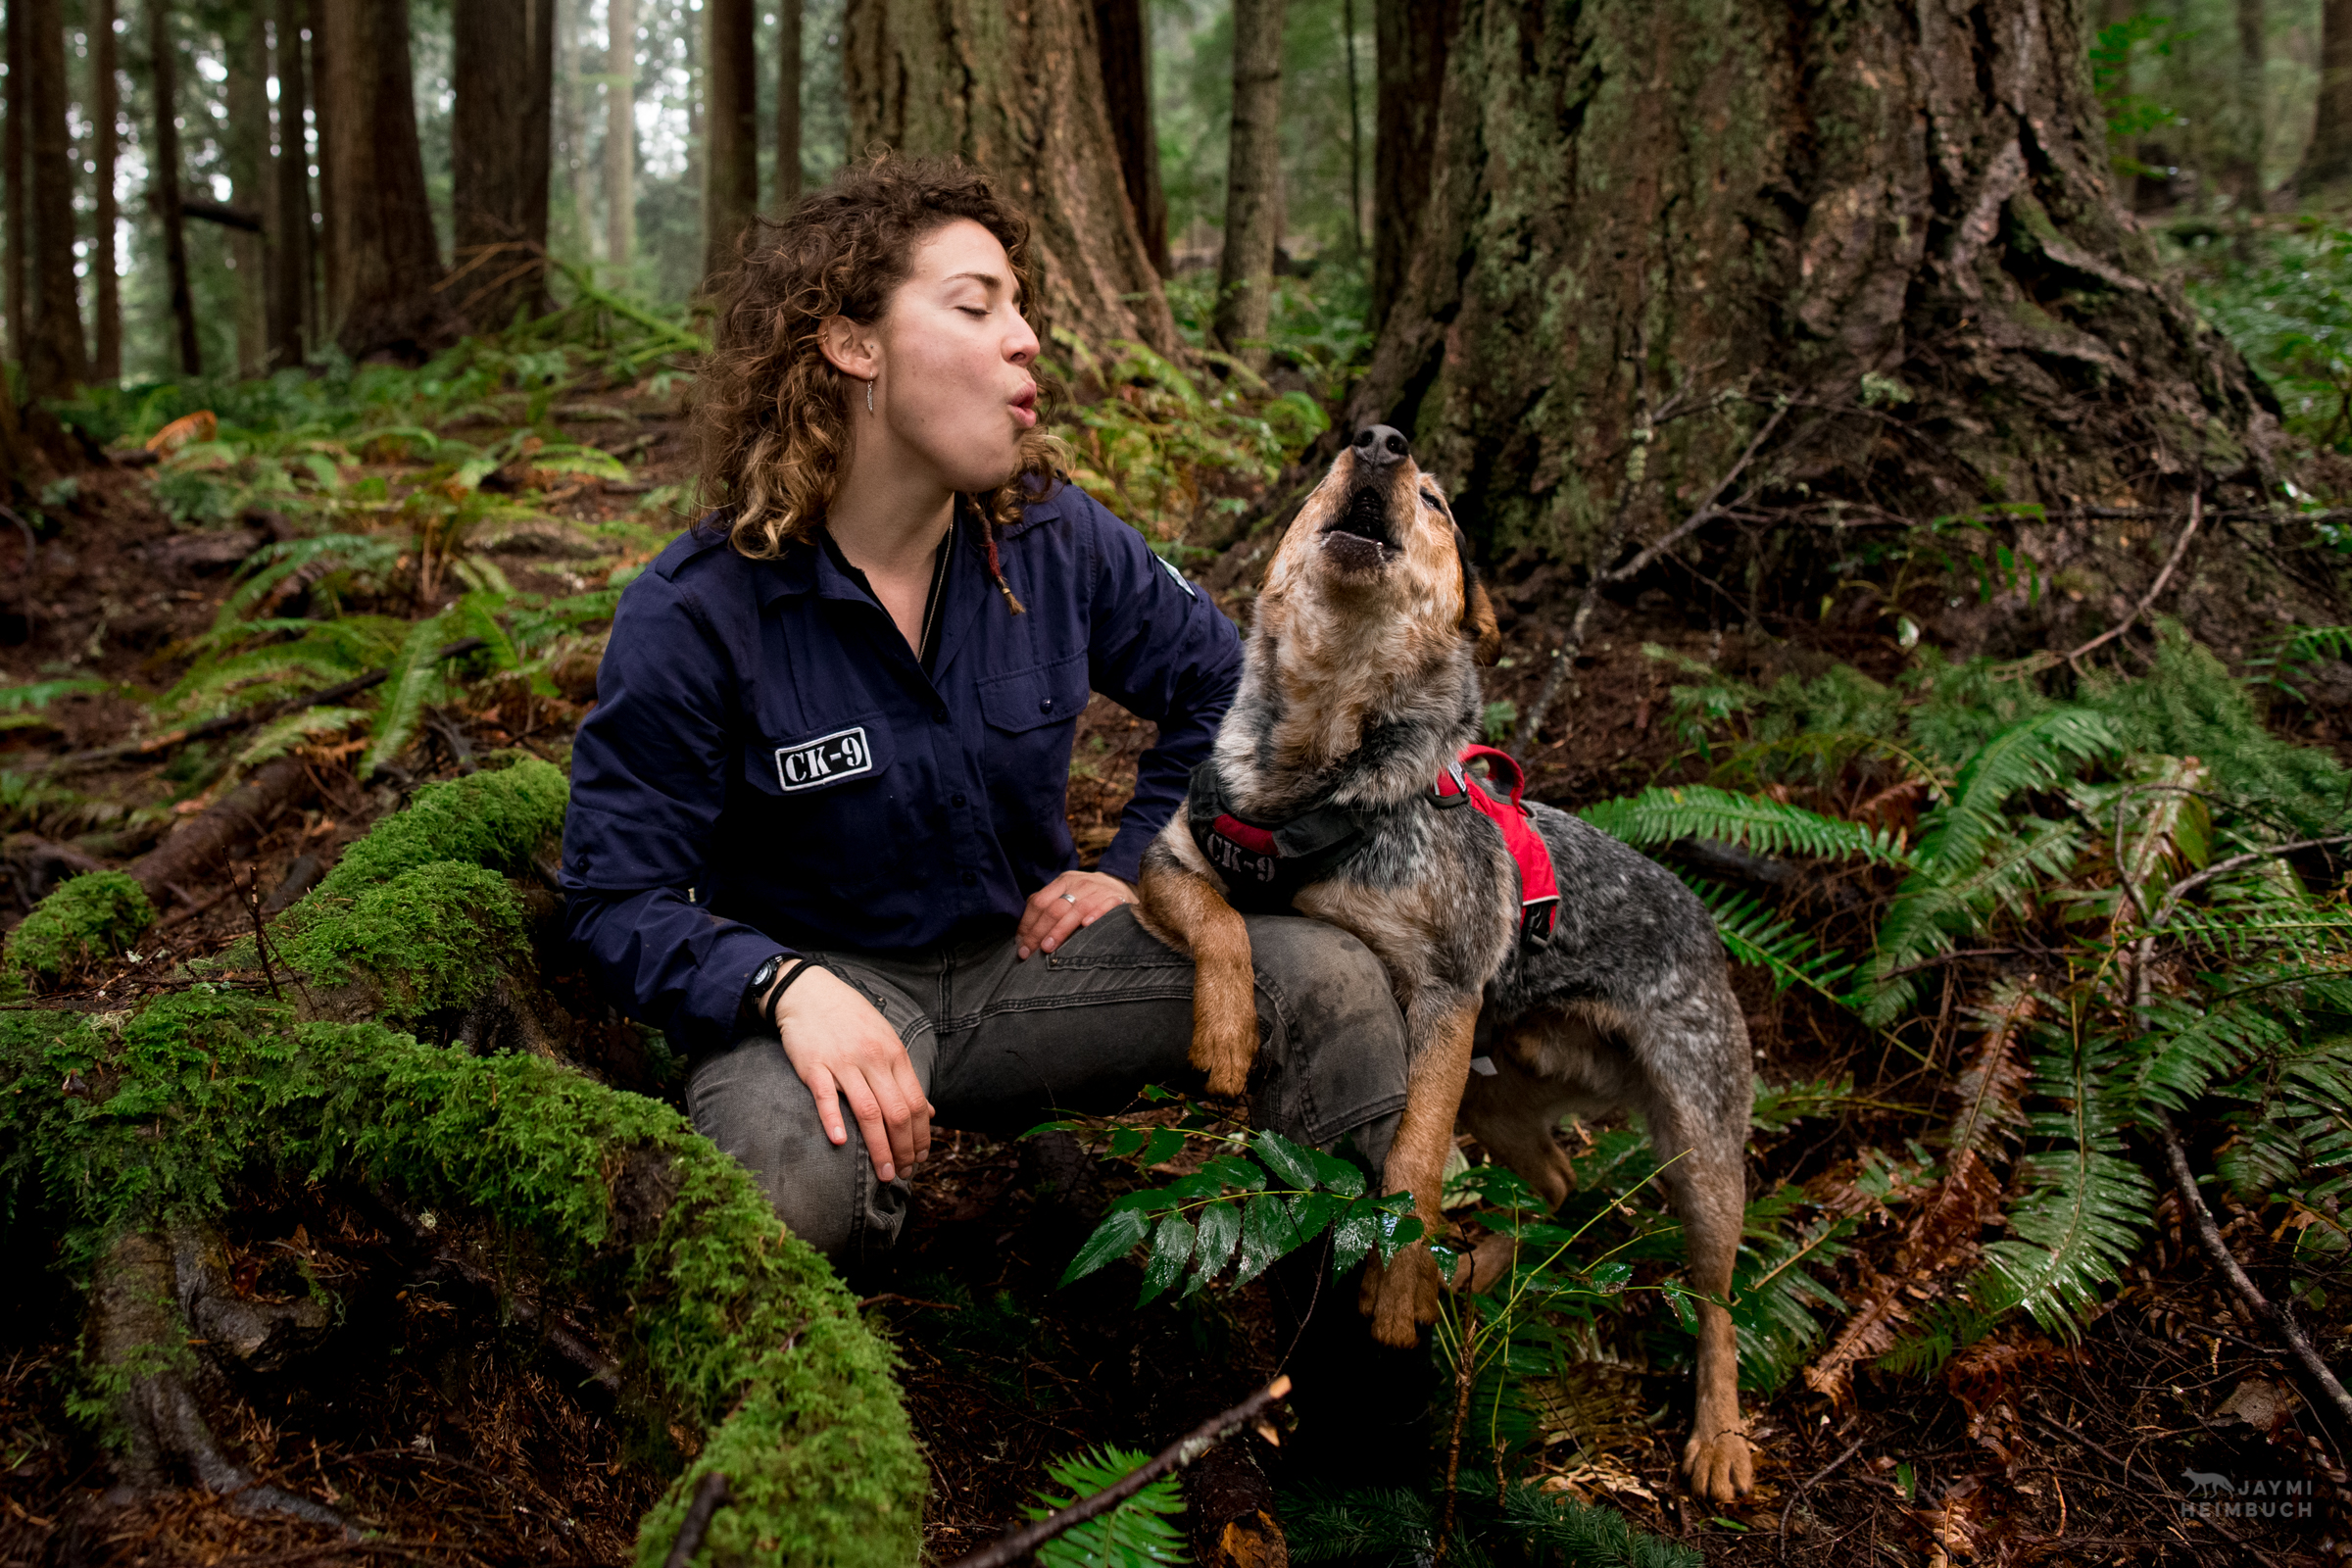 Hiccup, a rescued cattle dog, howls with a handler at Conservation Canines, University of Washington's Center for Conservation Biology, Washington